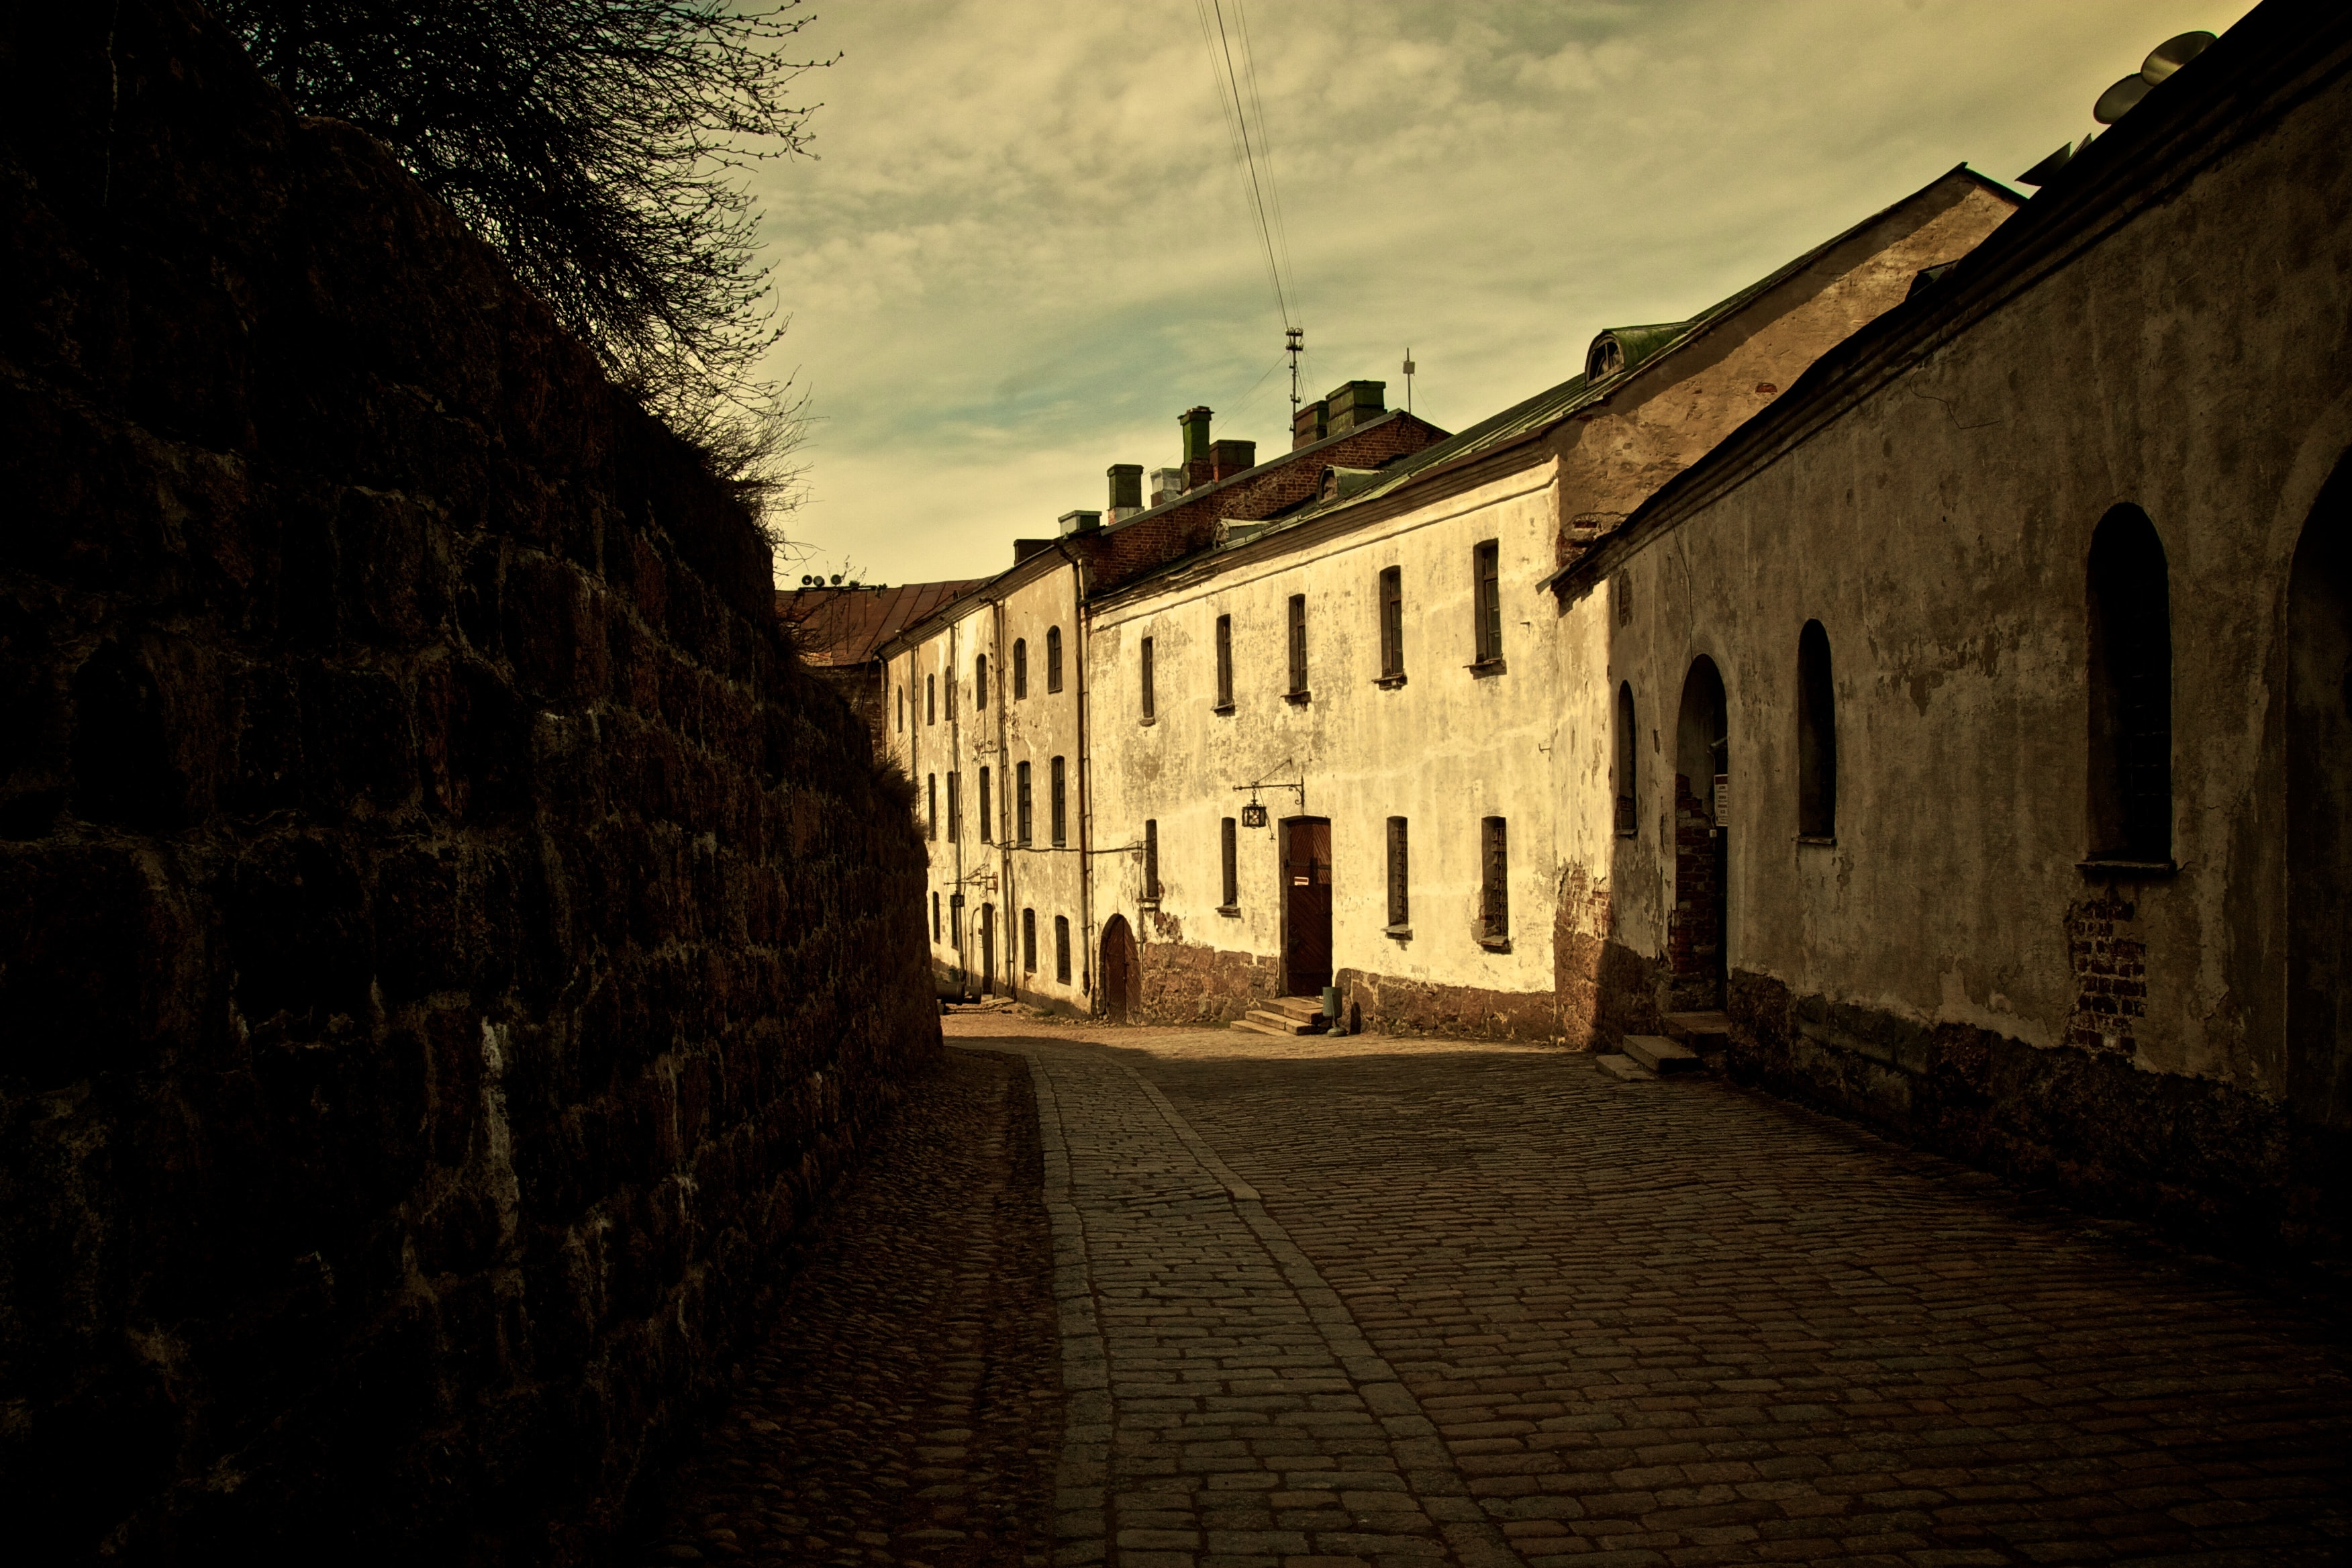 Brick street with sun illuminating a row of houses with arched windows and doorways